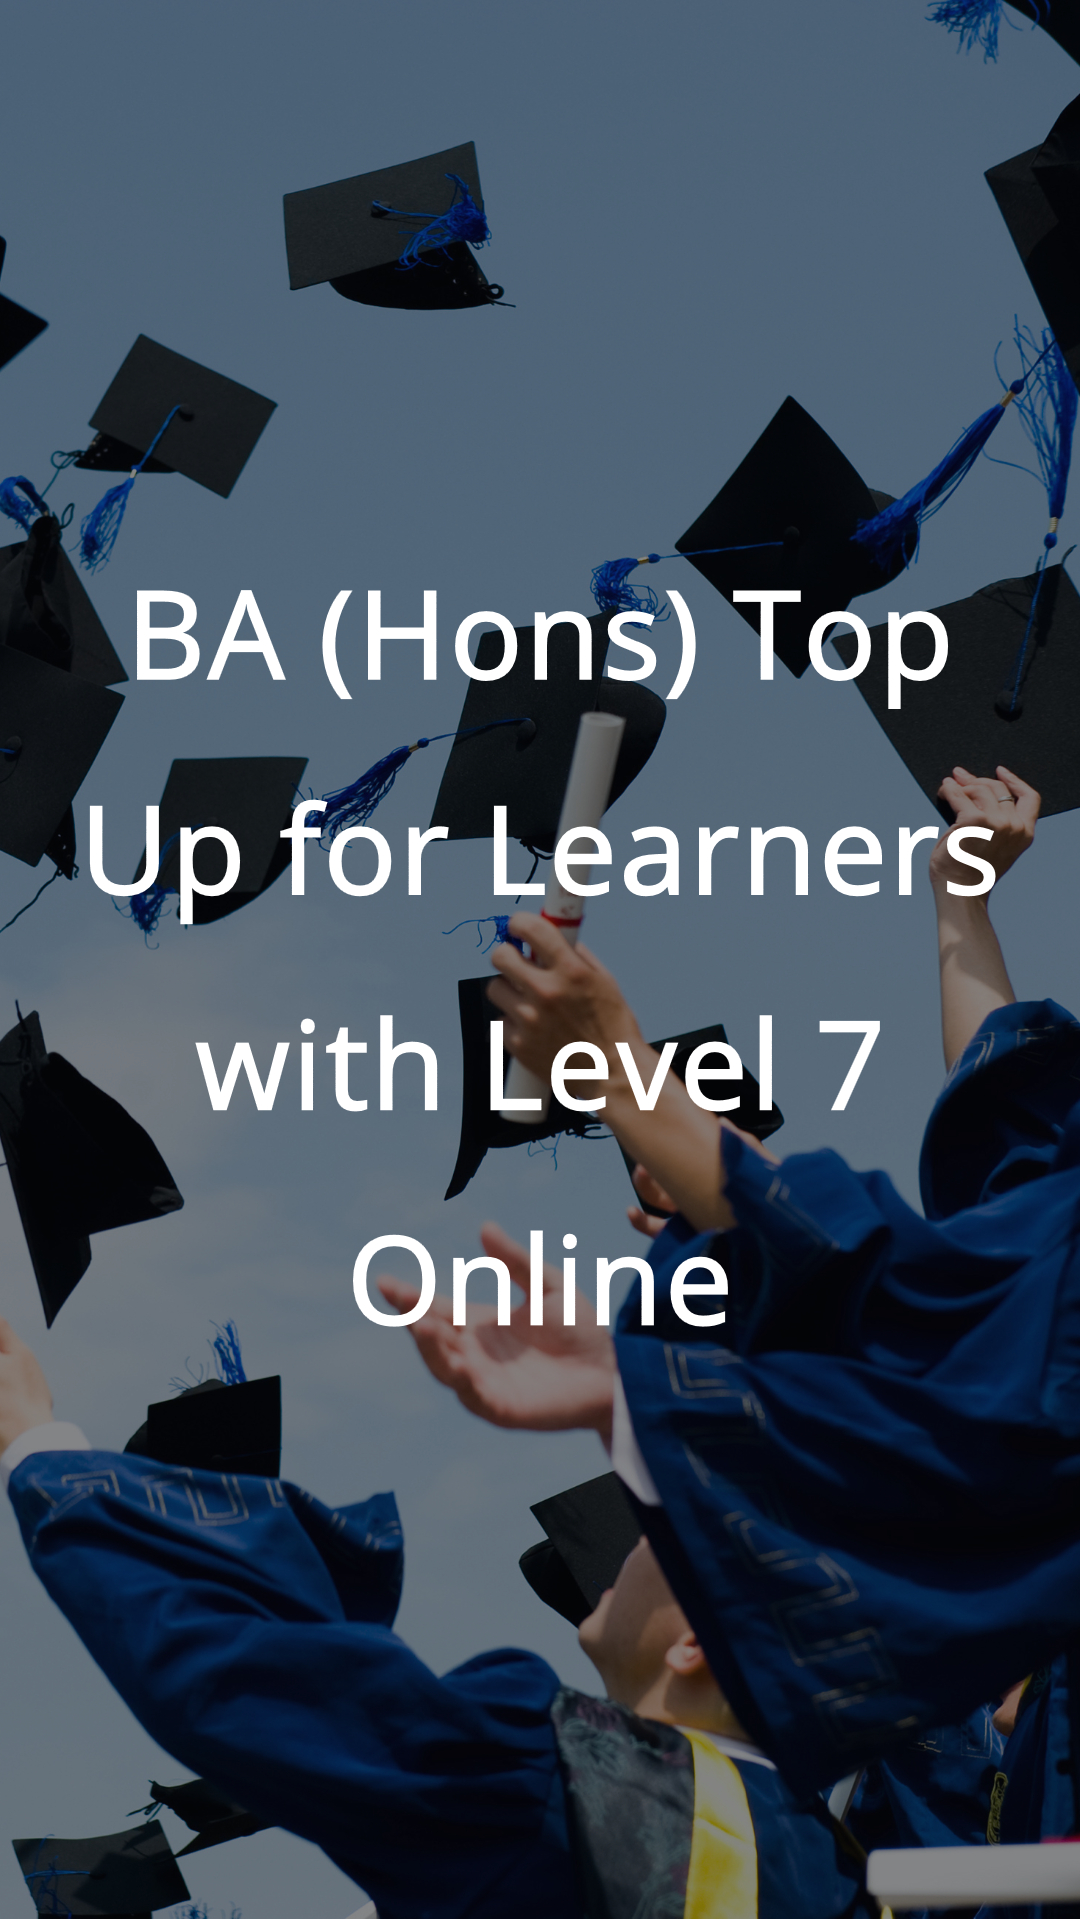 BA (Hons) Top Up for Learners with Level 7 Online